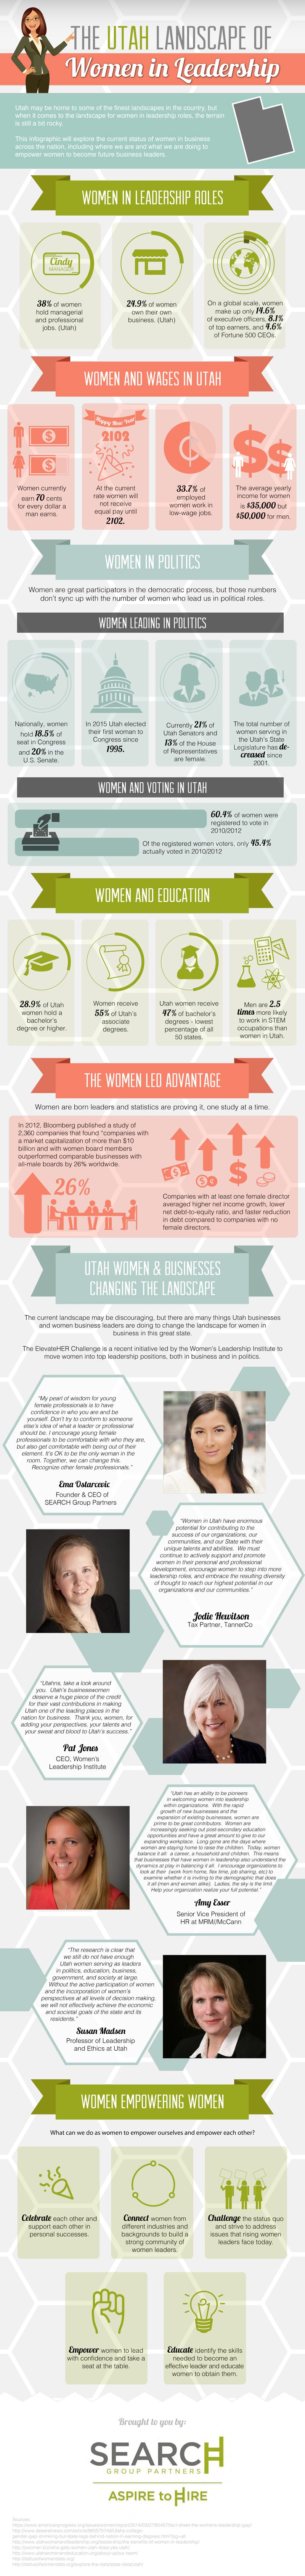 Revised-Infographic-Women-in-Business